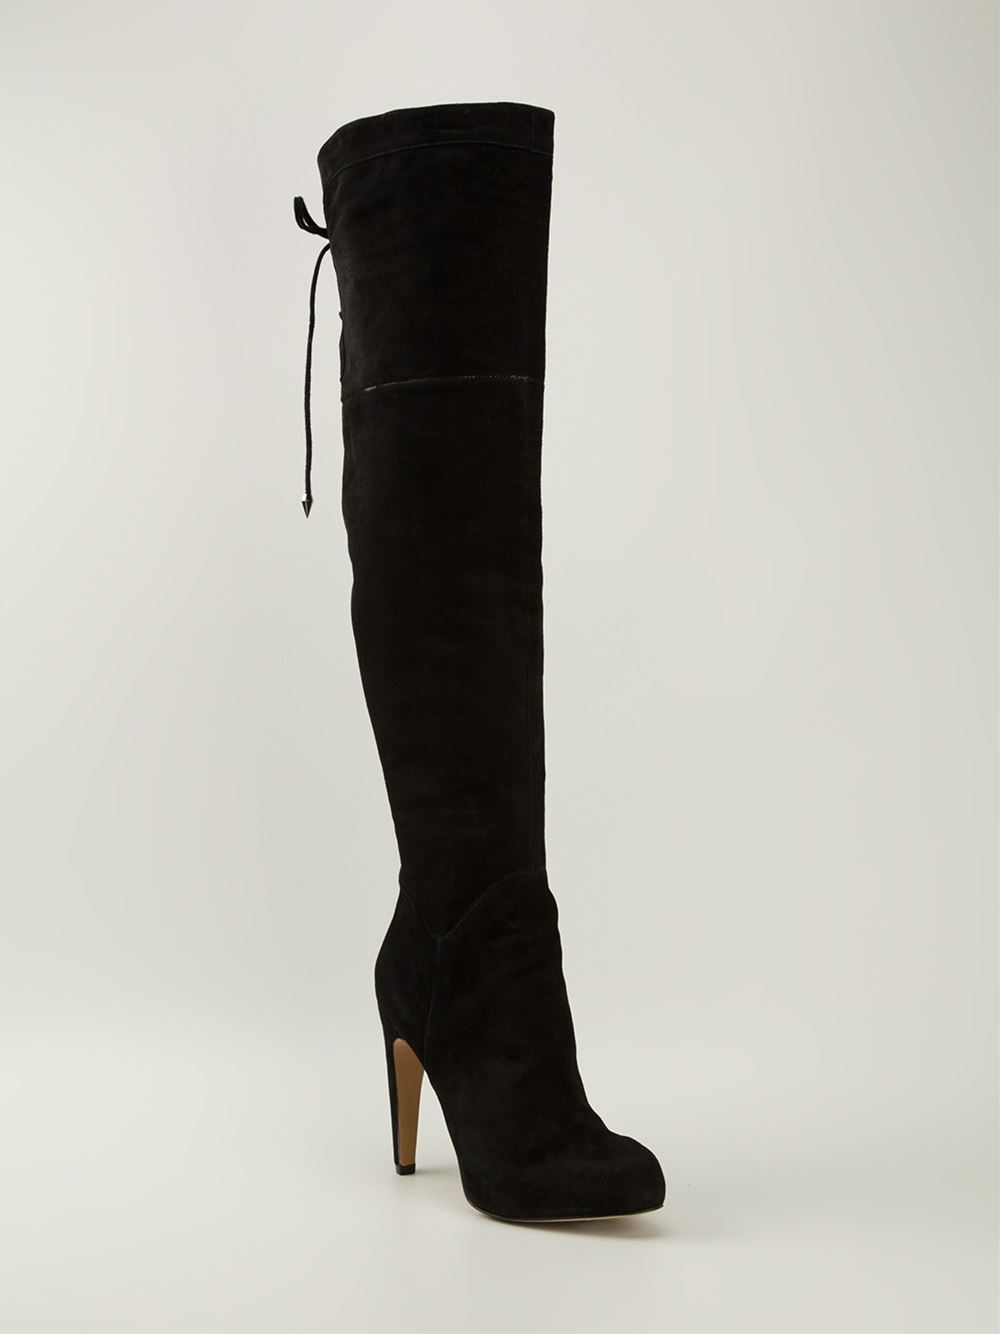 7957239ee6524d Gallery. Previously sold at  Farfetch · Women s Thigh High Boots Women s Sam  Edelman ...